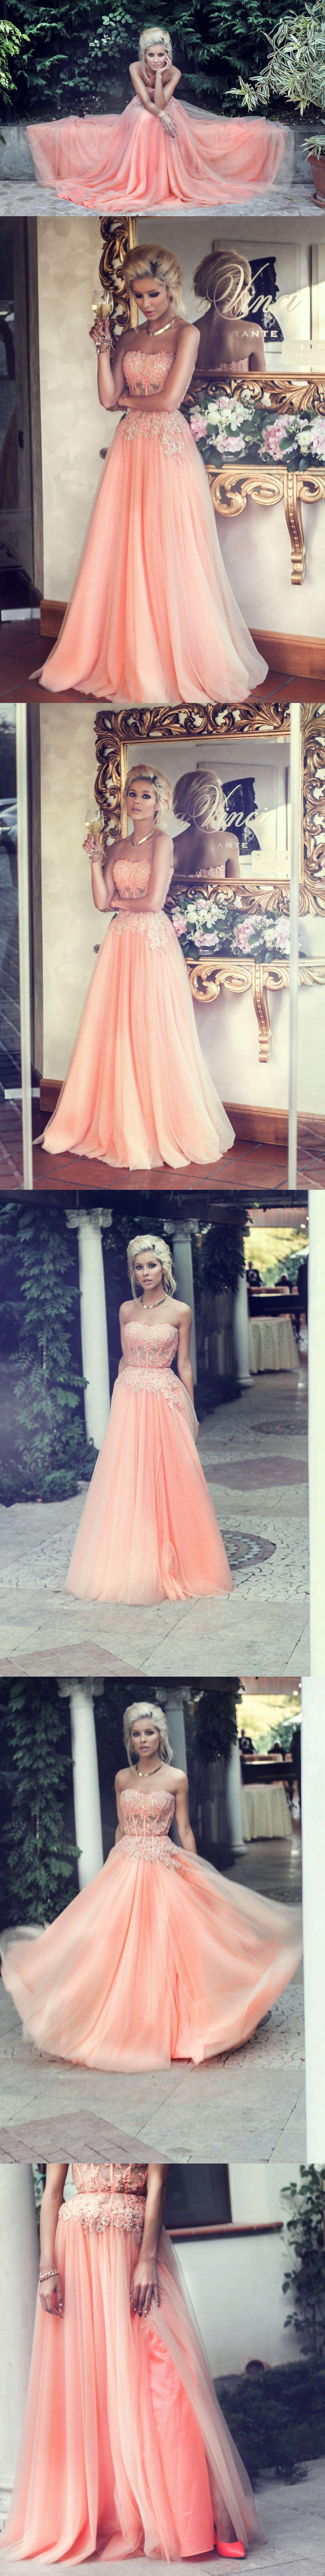 Свадьба - New Arrival A-line Strapless Lace Appliqued Bodice Blush Tulle Skirt Long Prom Dresses For 2015 Party APD1279 From DiyDressonline